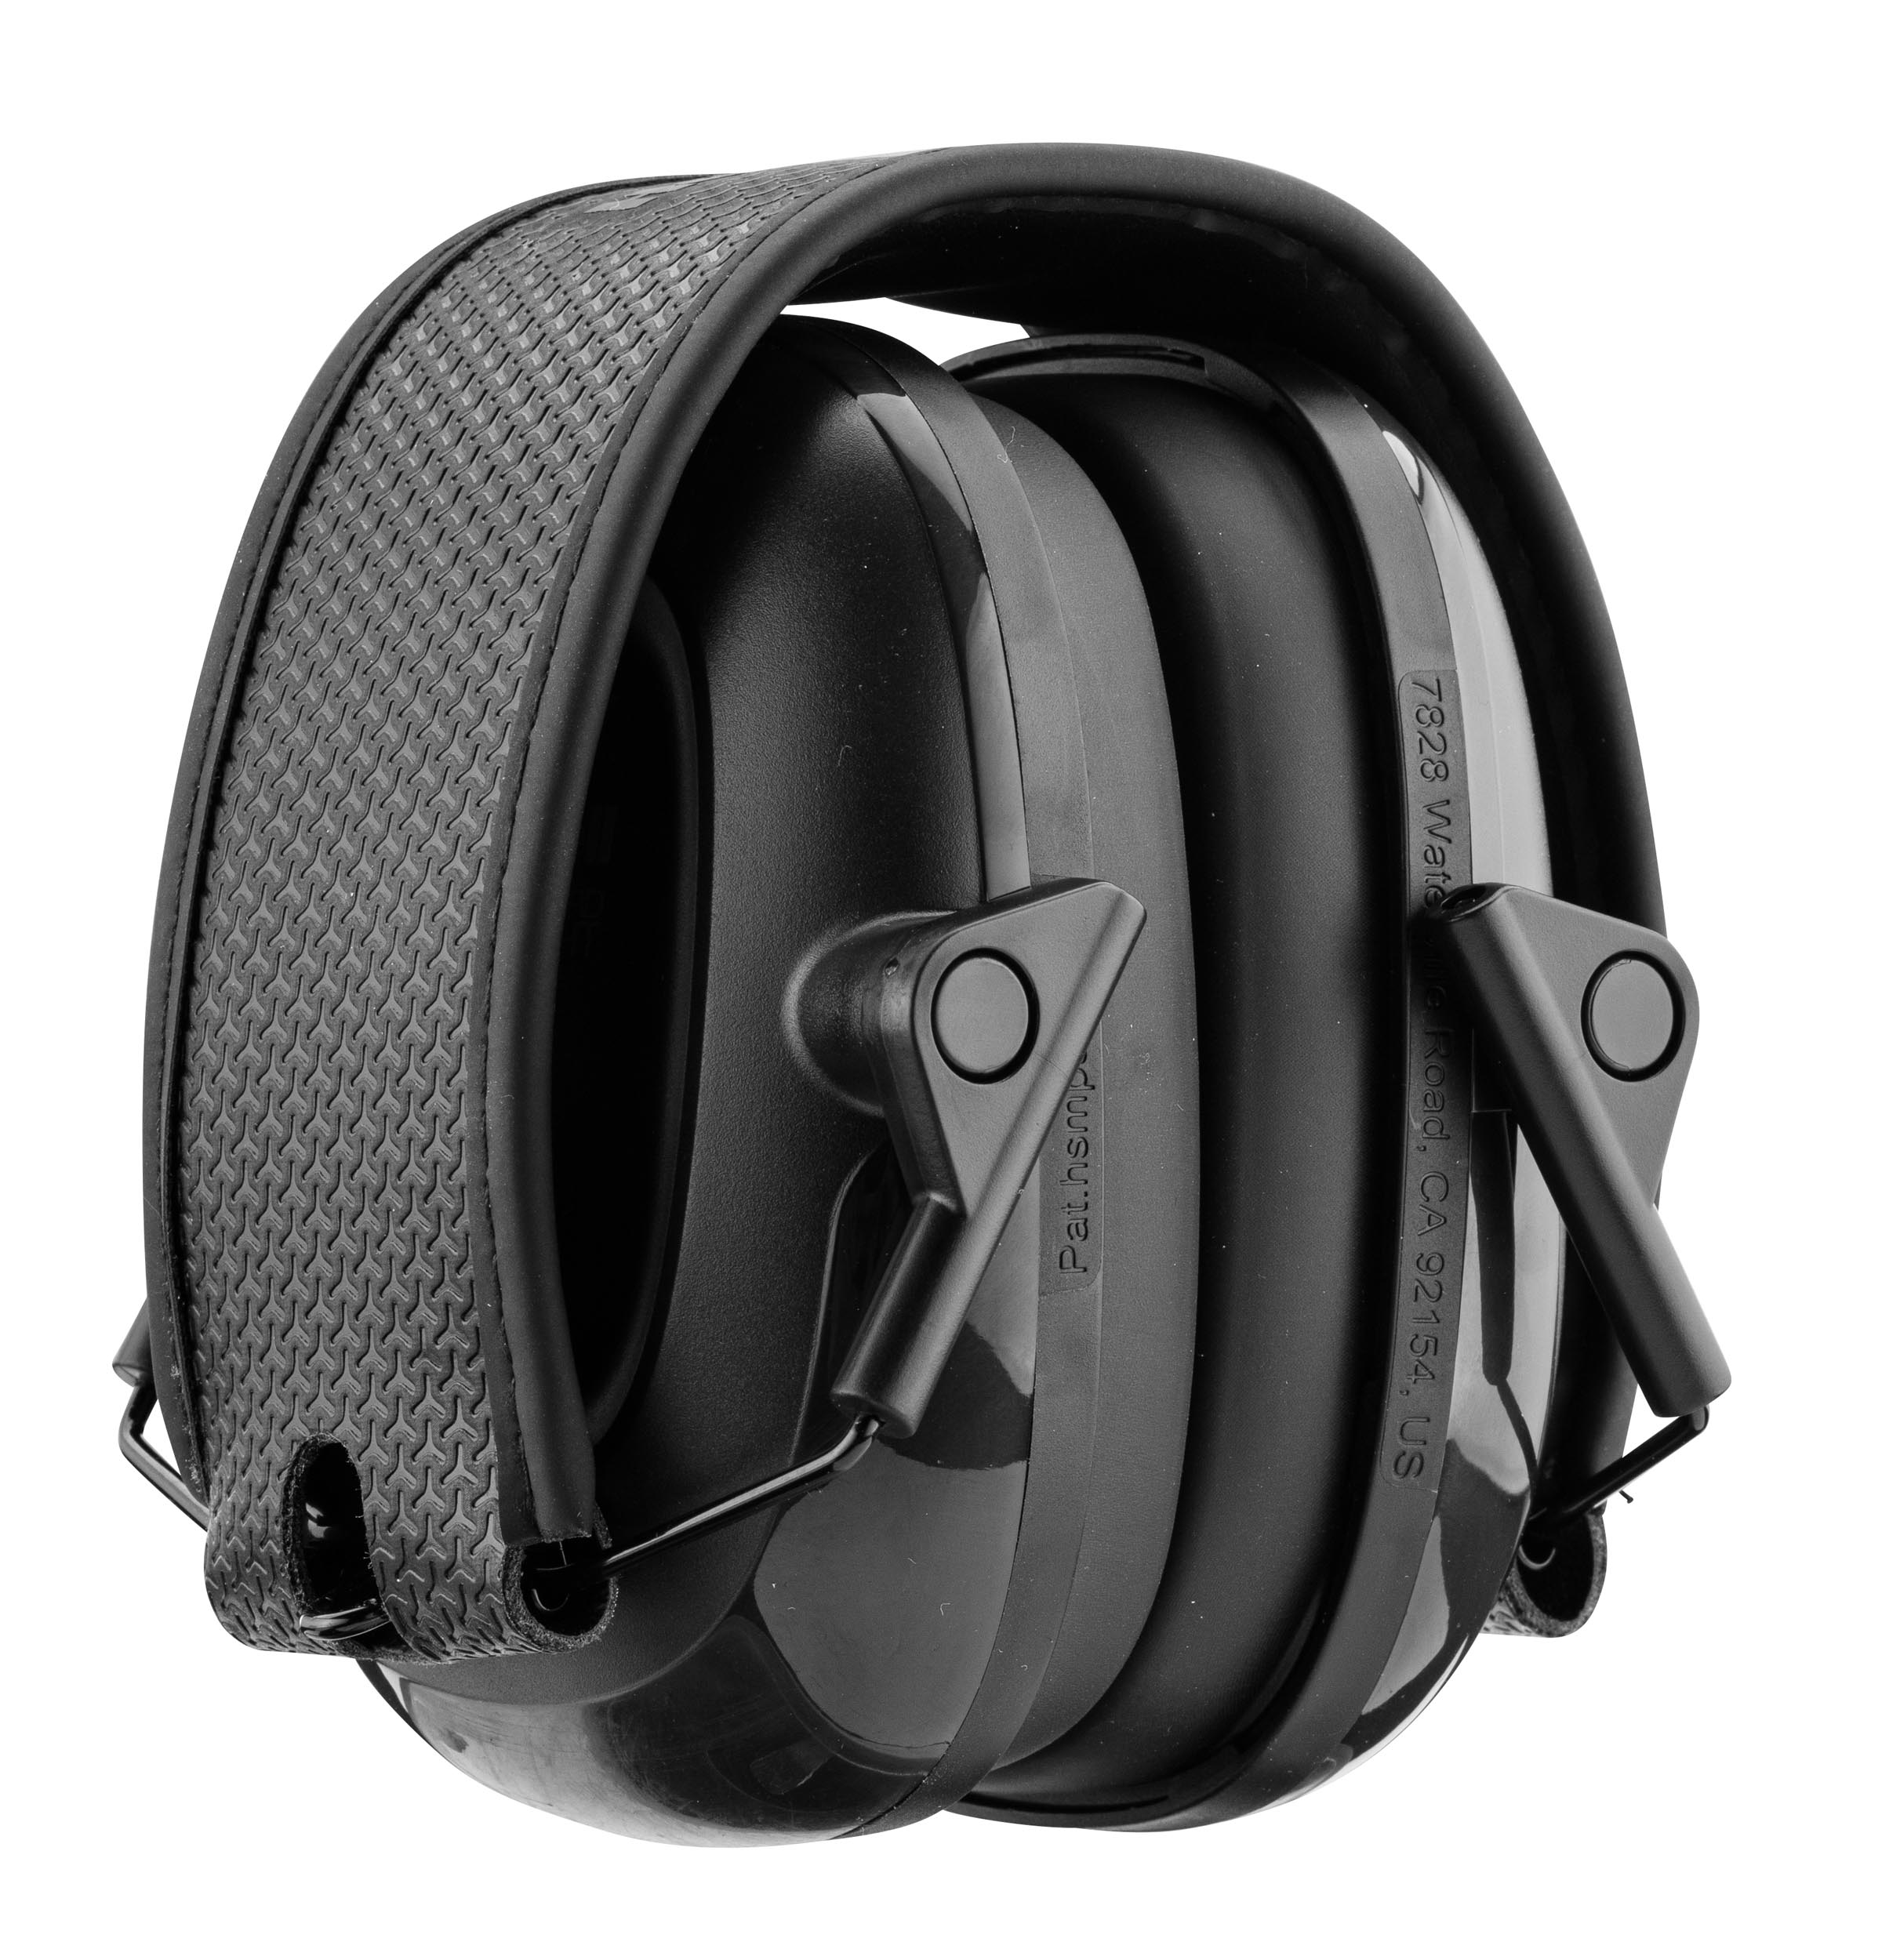 A51105-2 Verishield VS 110F compact earmuffs - Bilsom - A51105